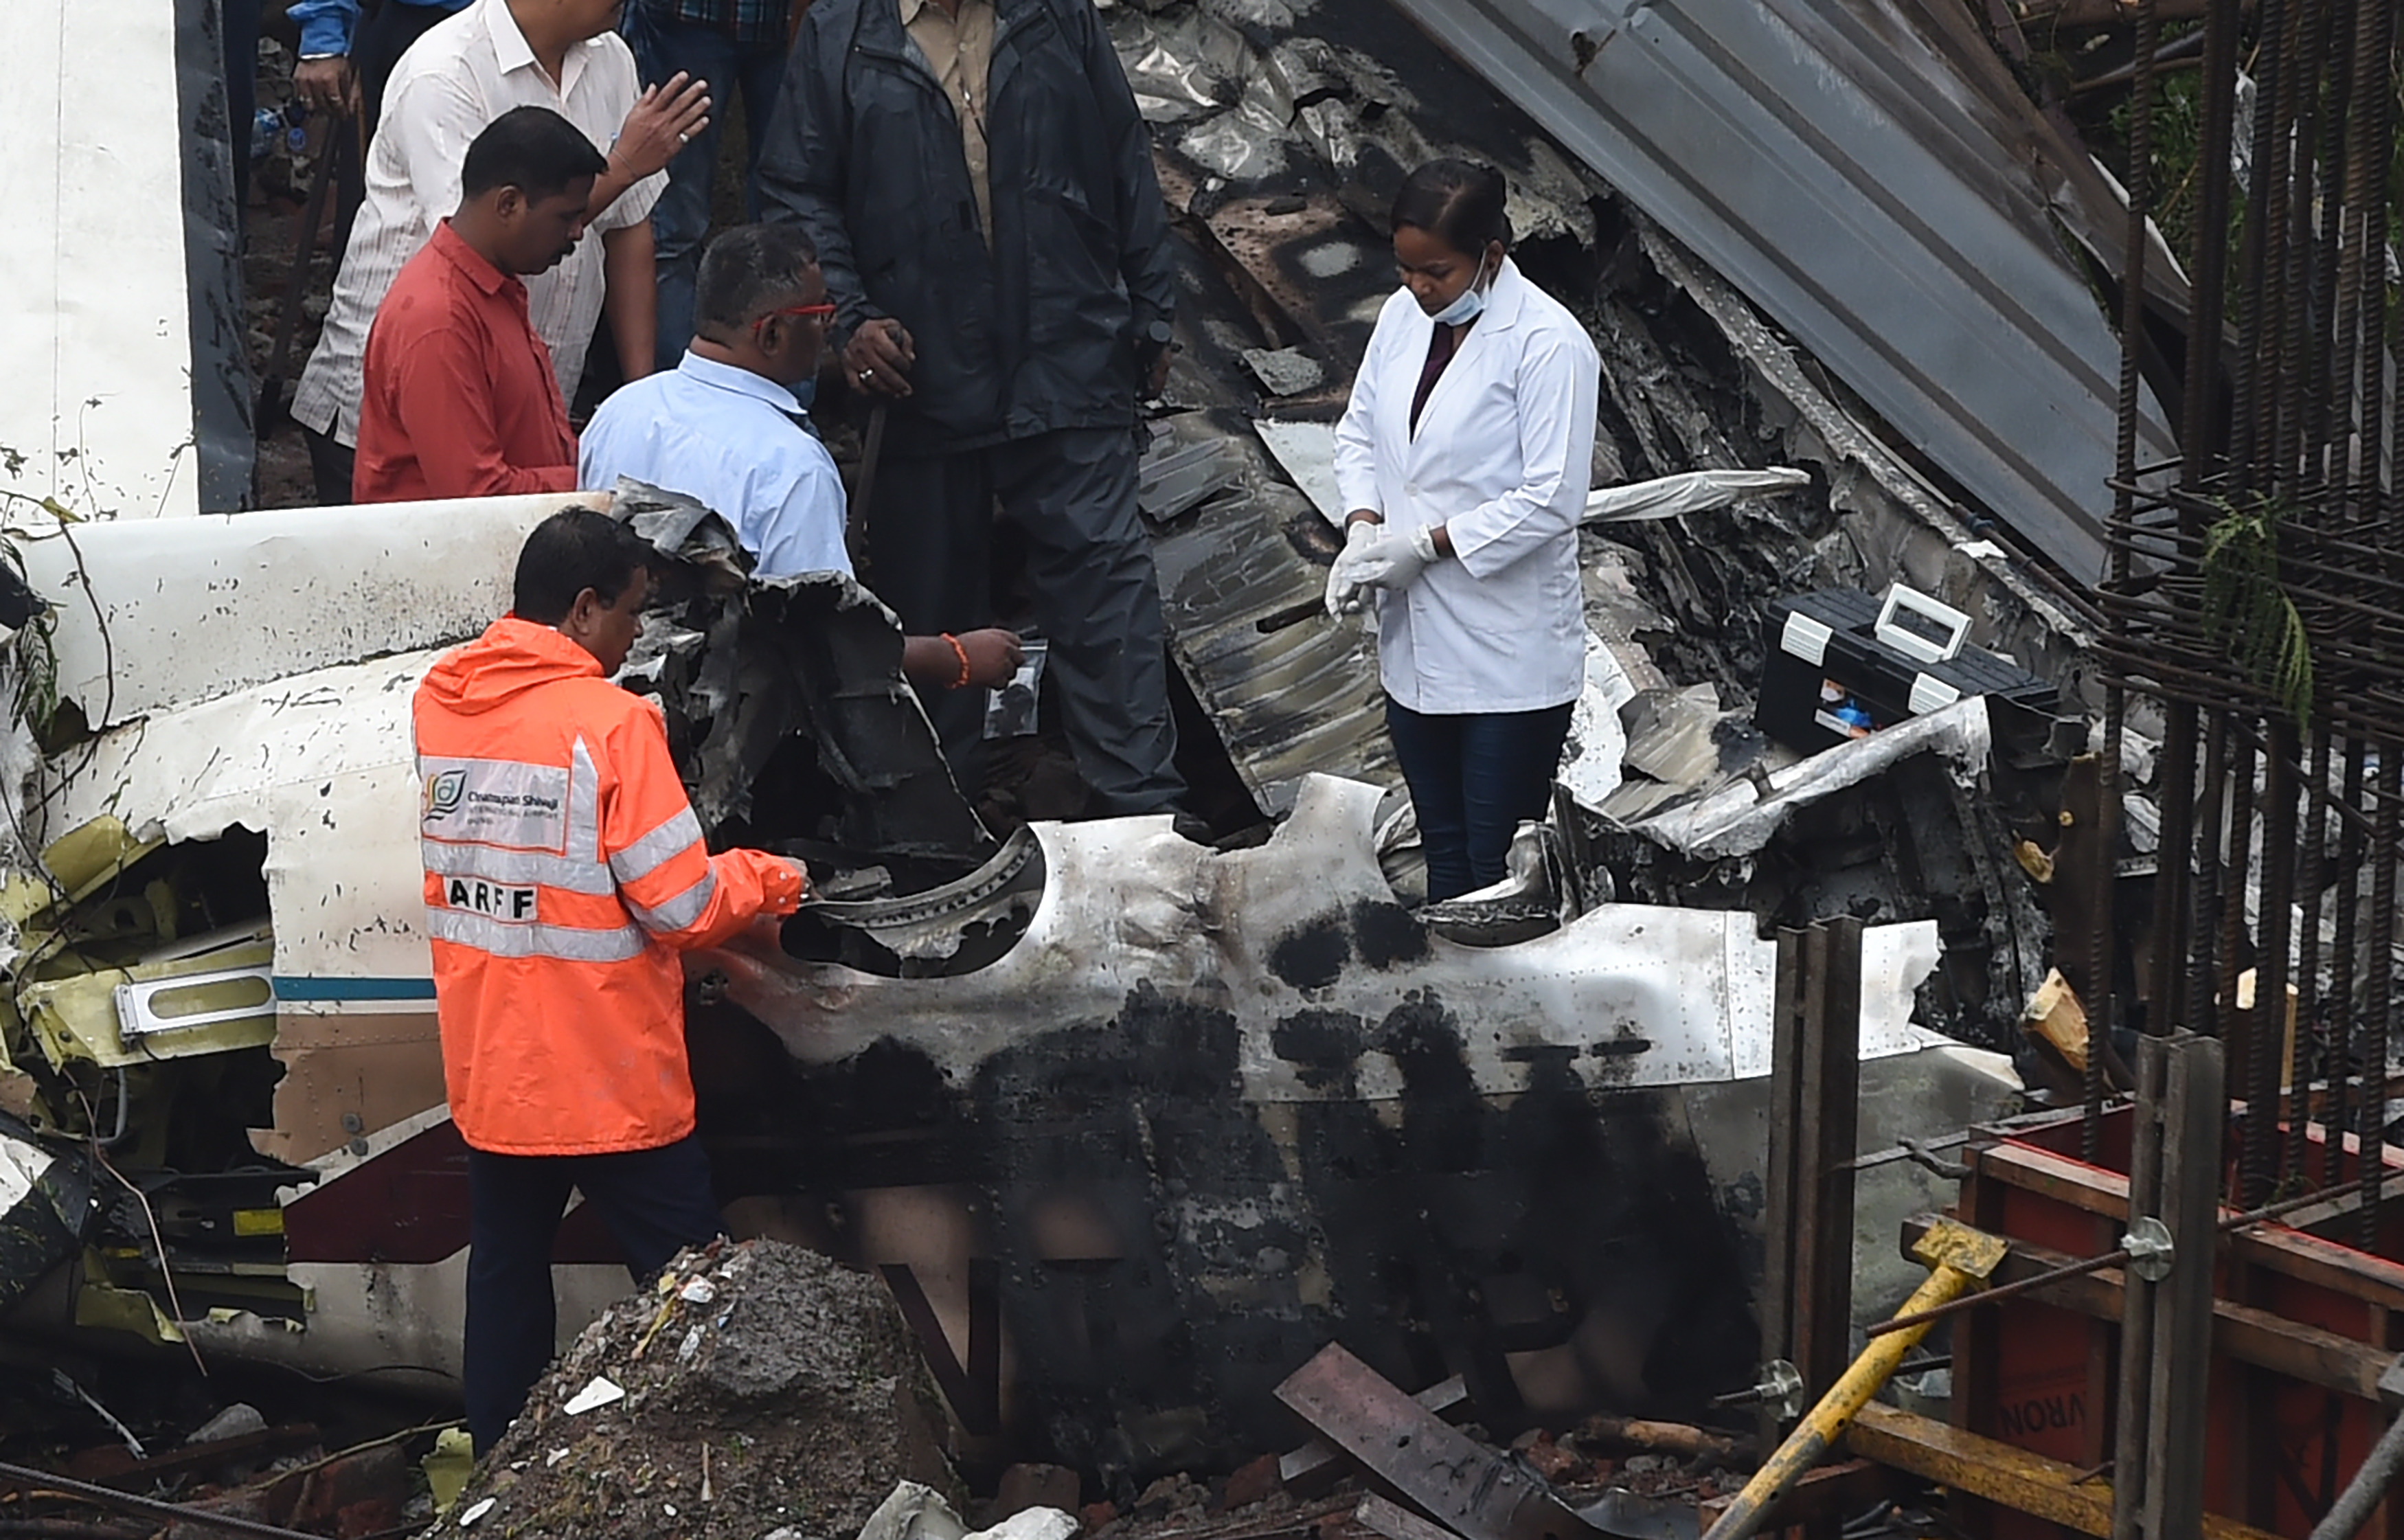 Investigators at the site of the plane crash on Thursday. (Credit: AFP)